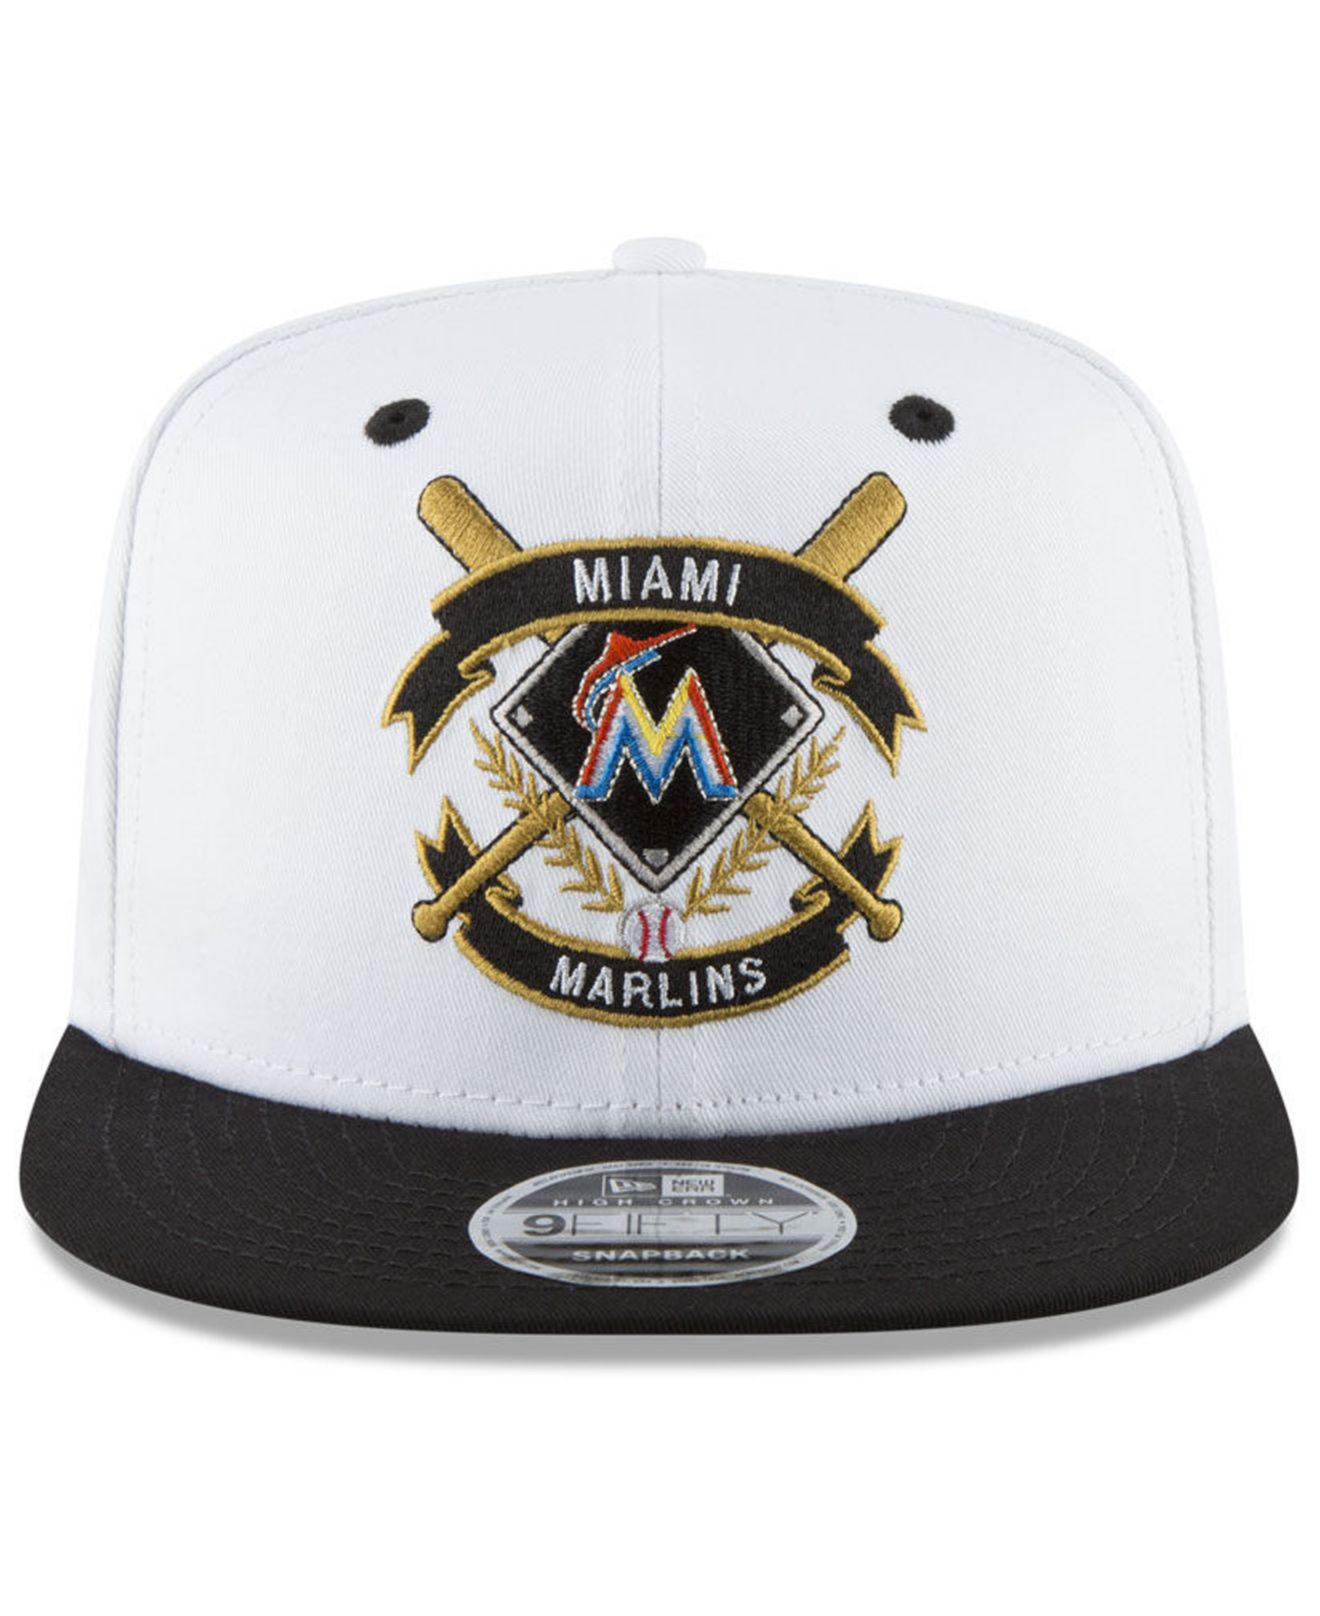 best website bfa6e a9ca7 ... canada lyst ktz miami marlins crest 9fifty snapback cap in black for  men fa760 33581